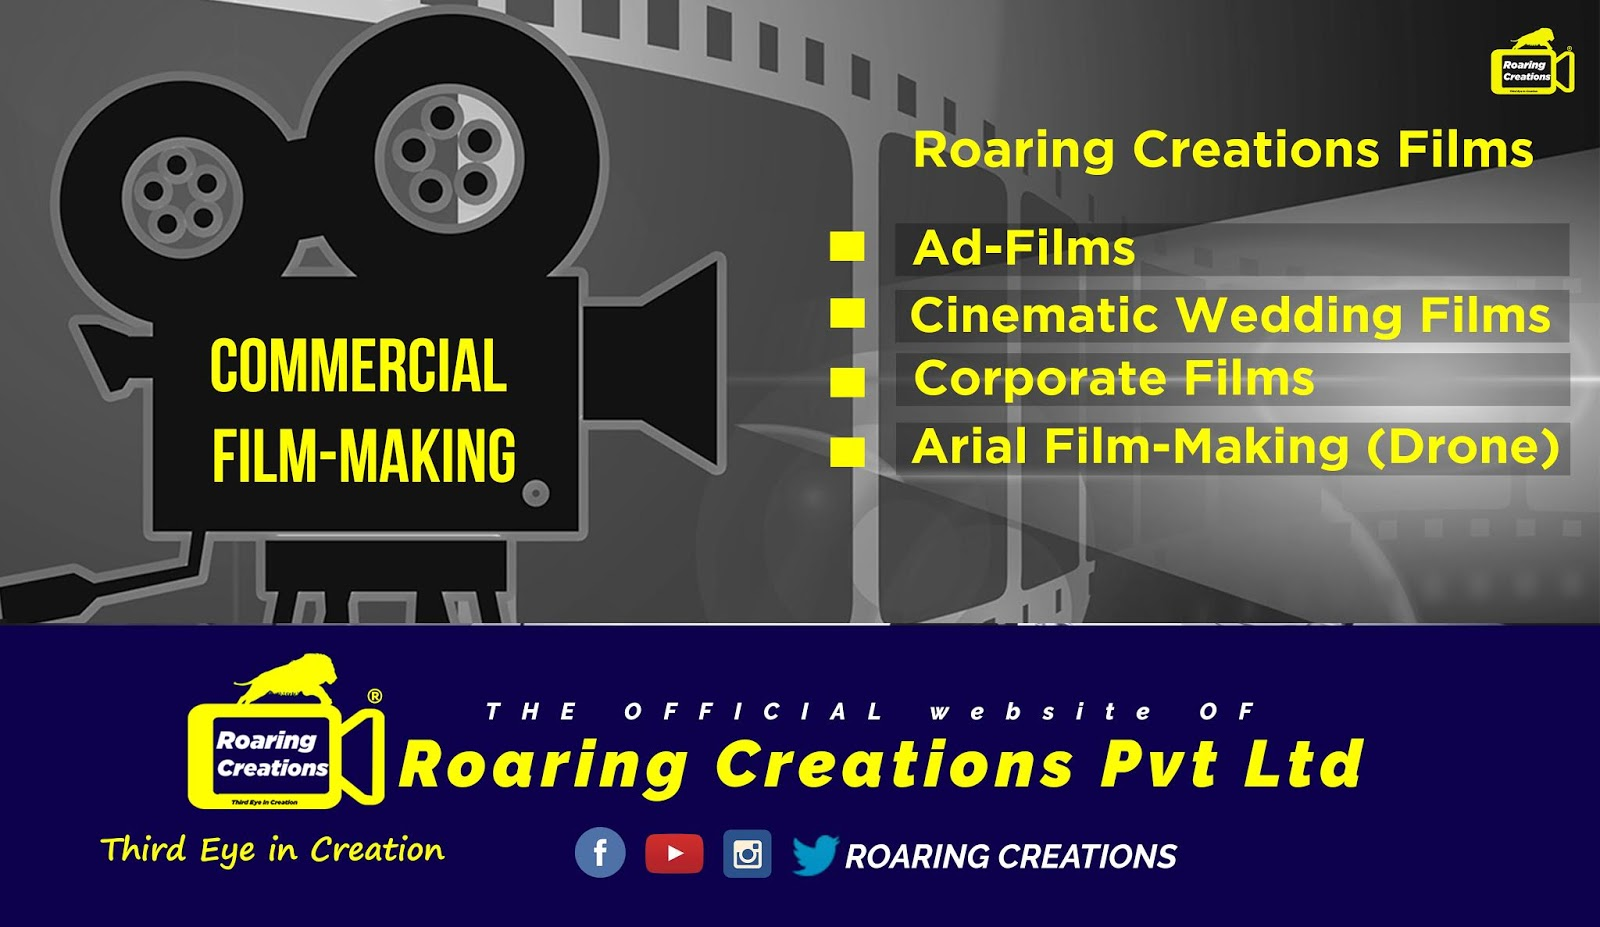 Commercial Film Making @ Roaring Creations